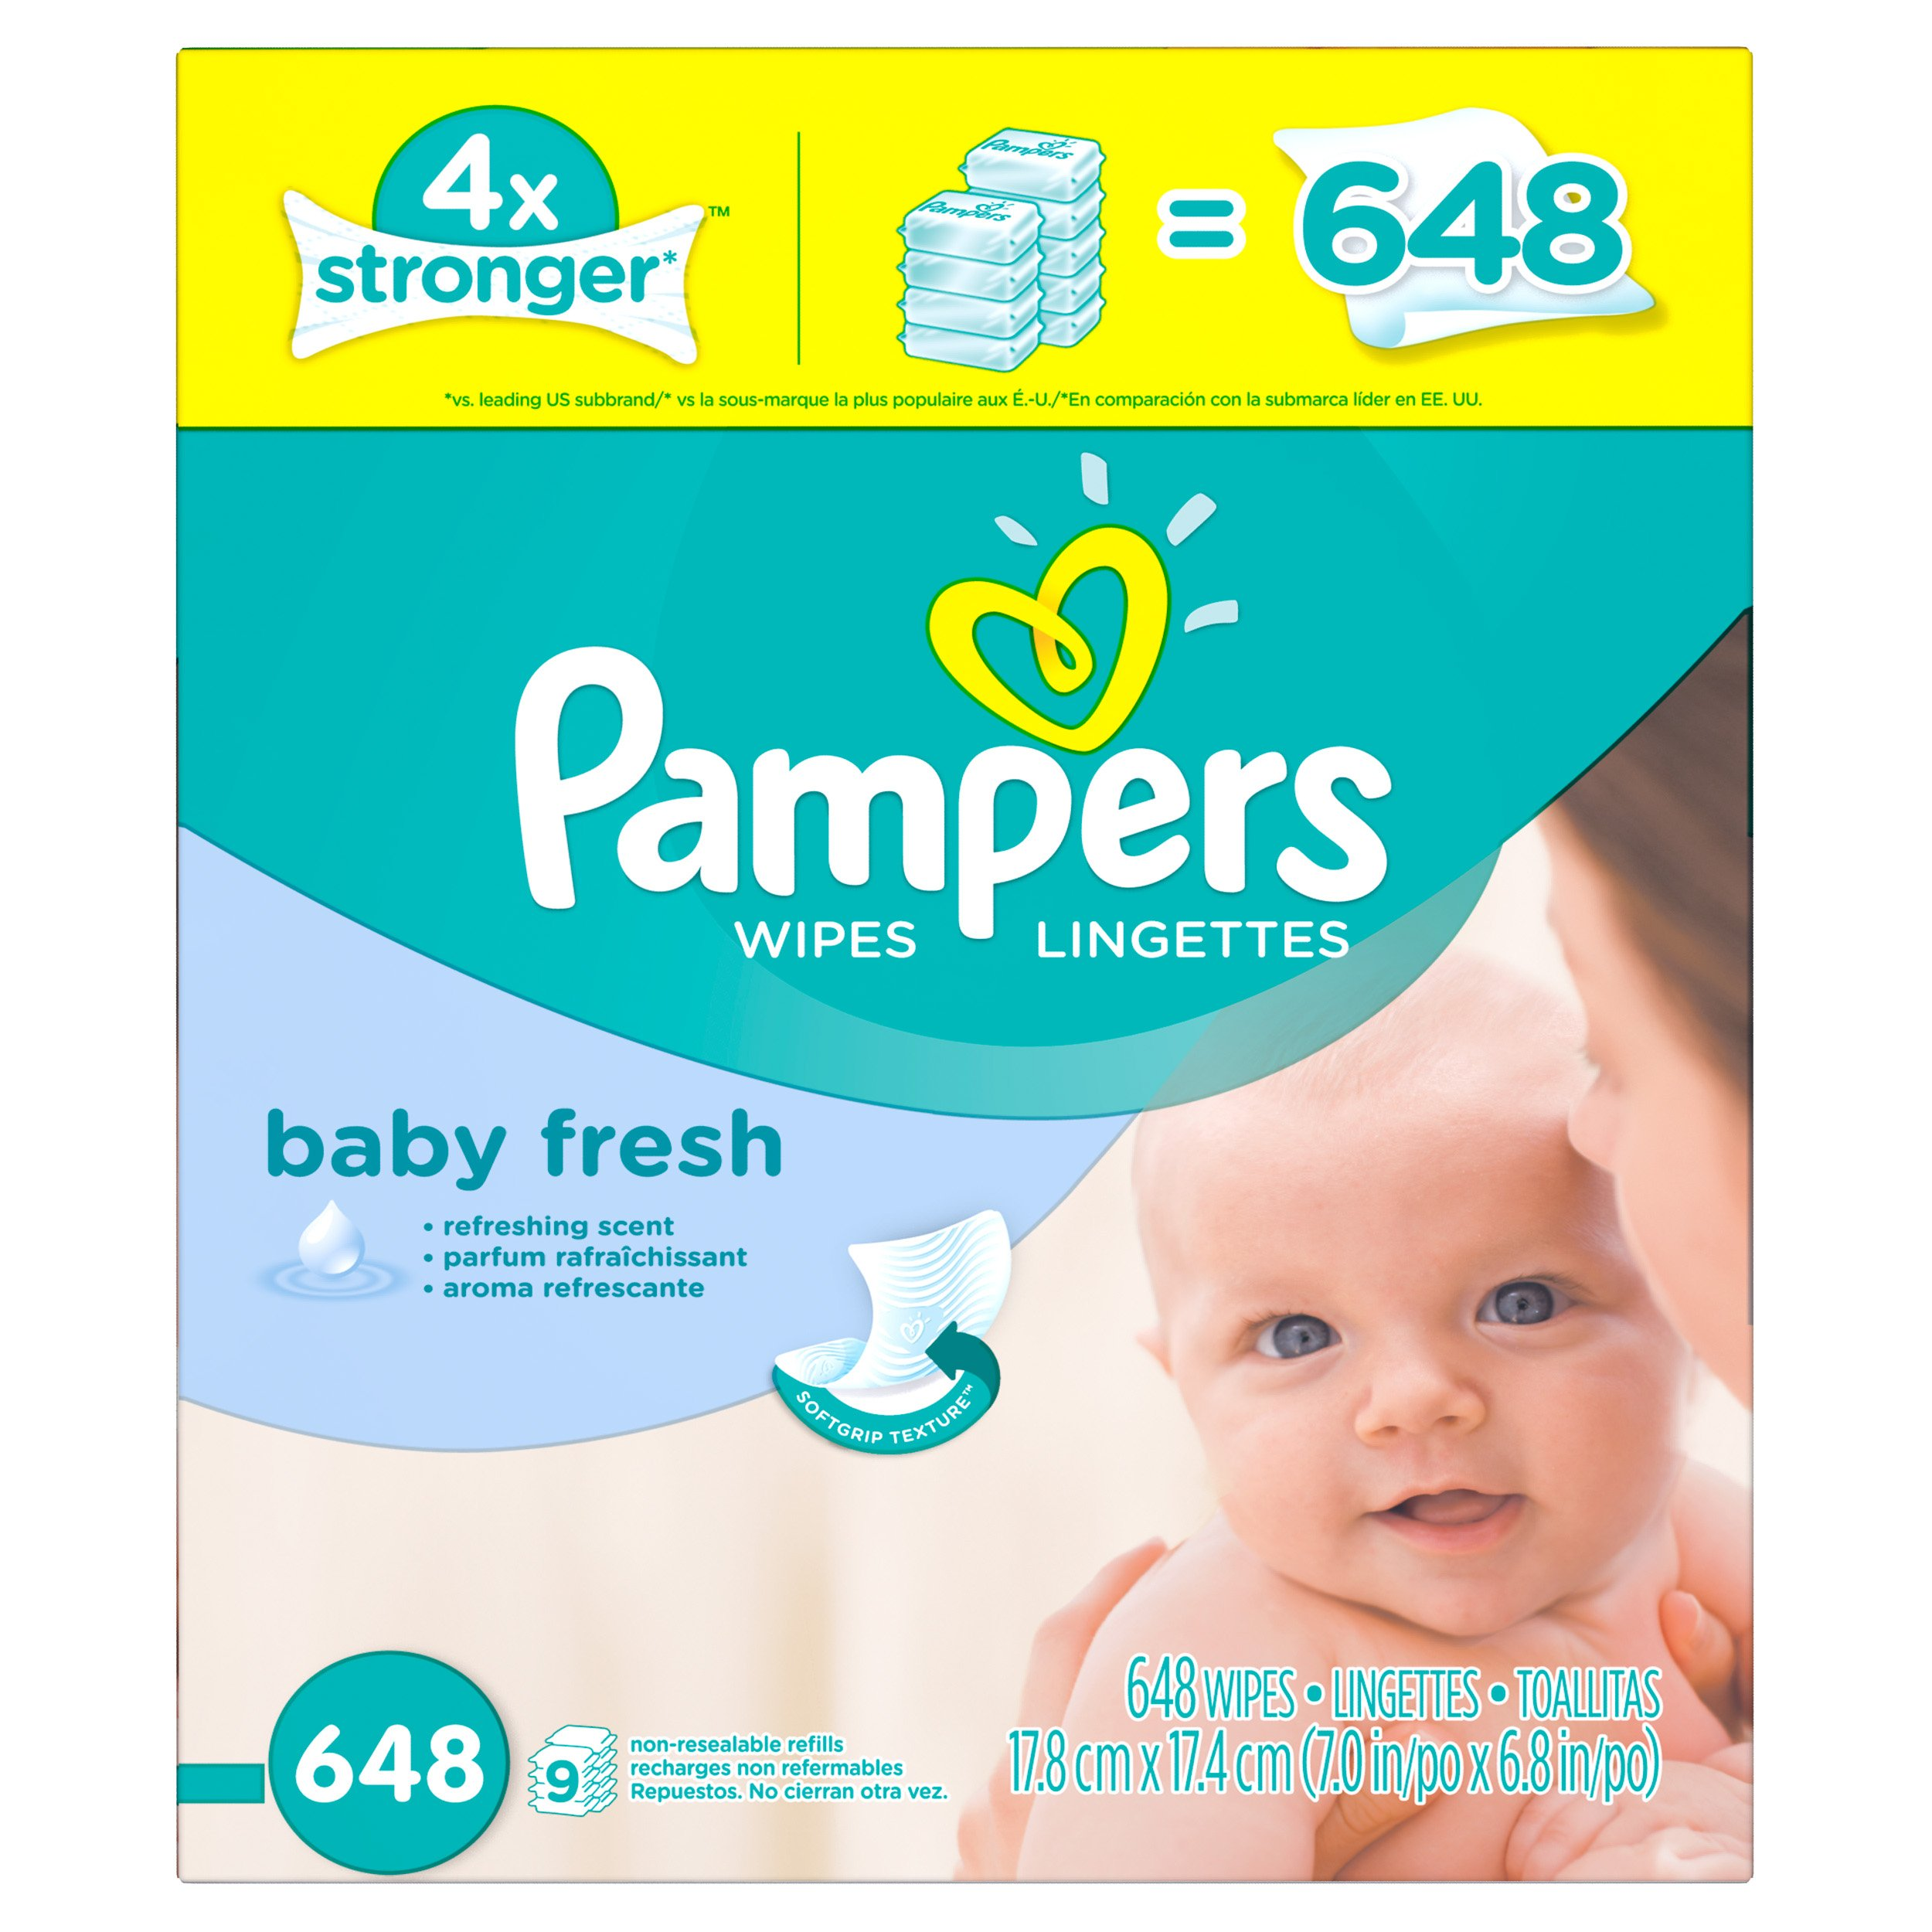 Pampers Fresh Baby Wipes 9X Refill 648 Count 4